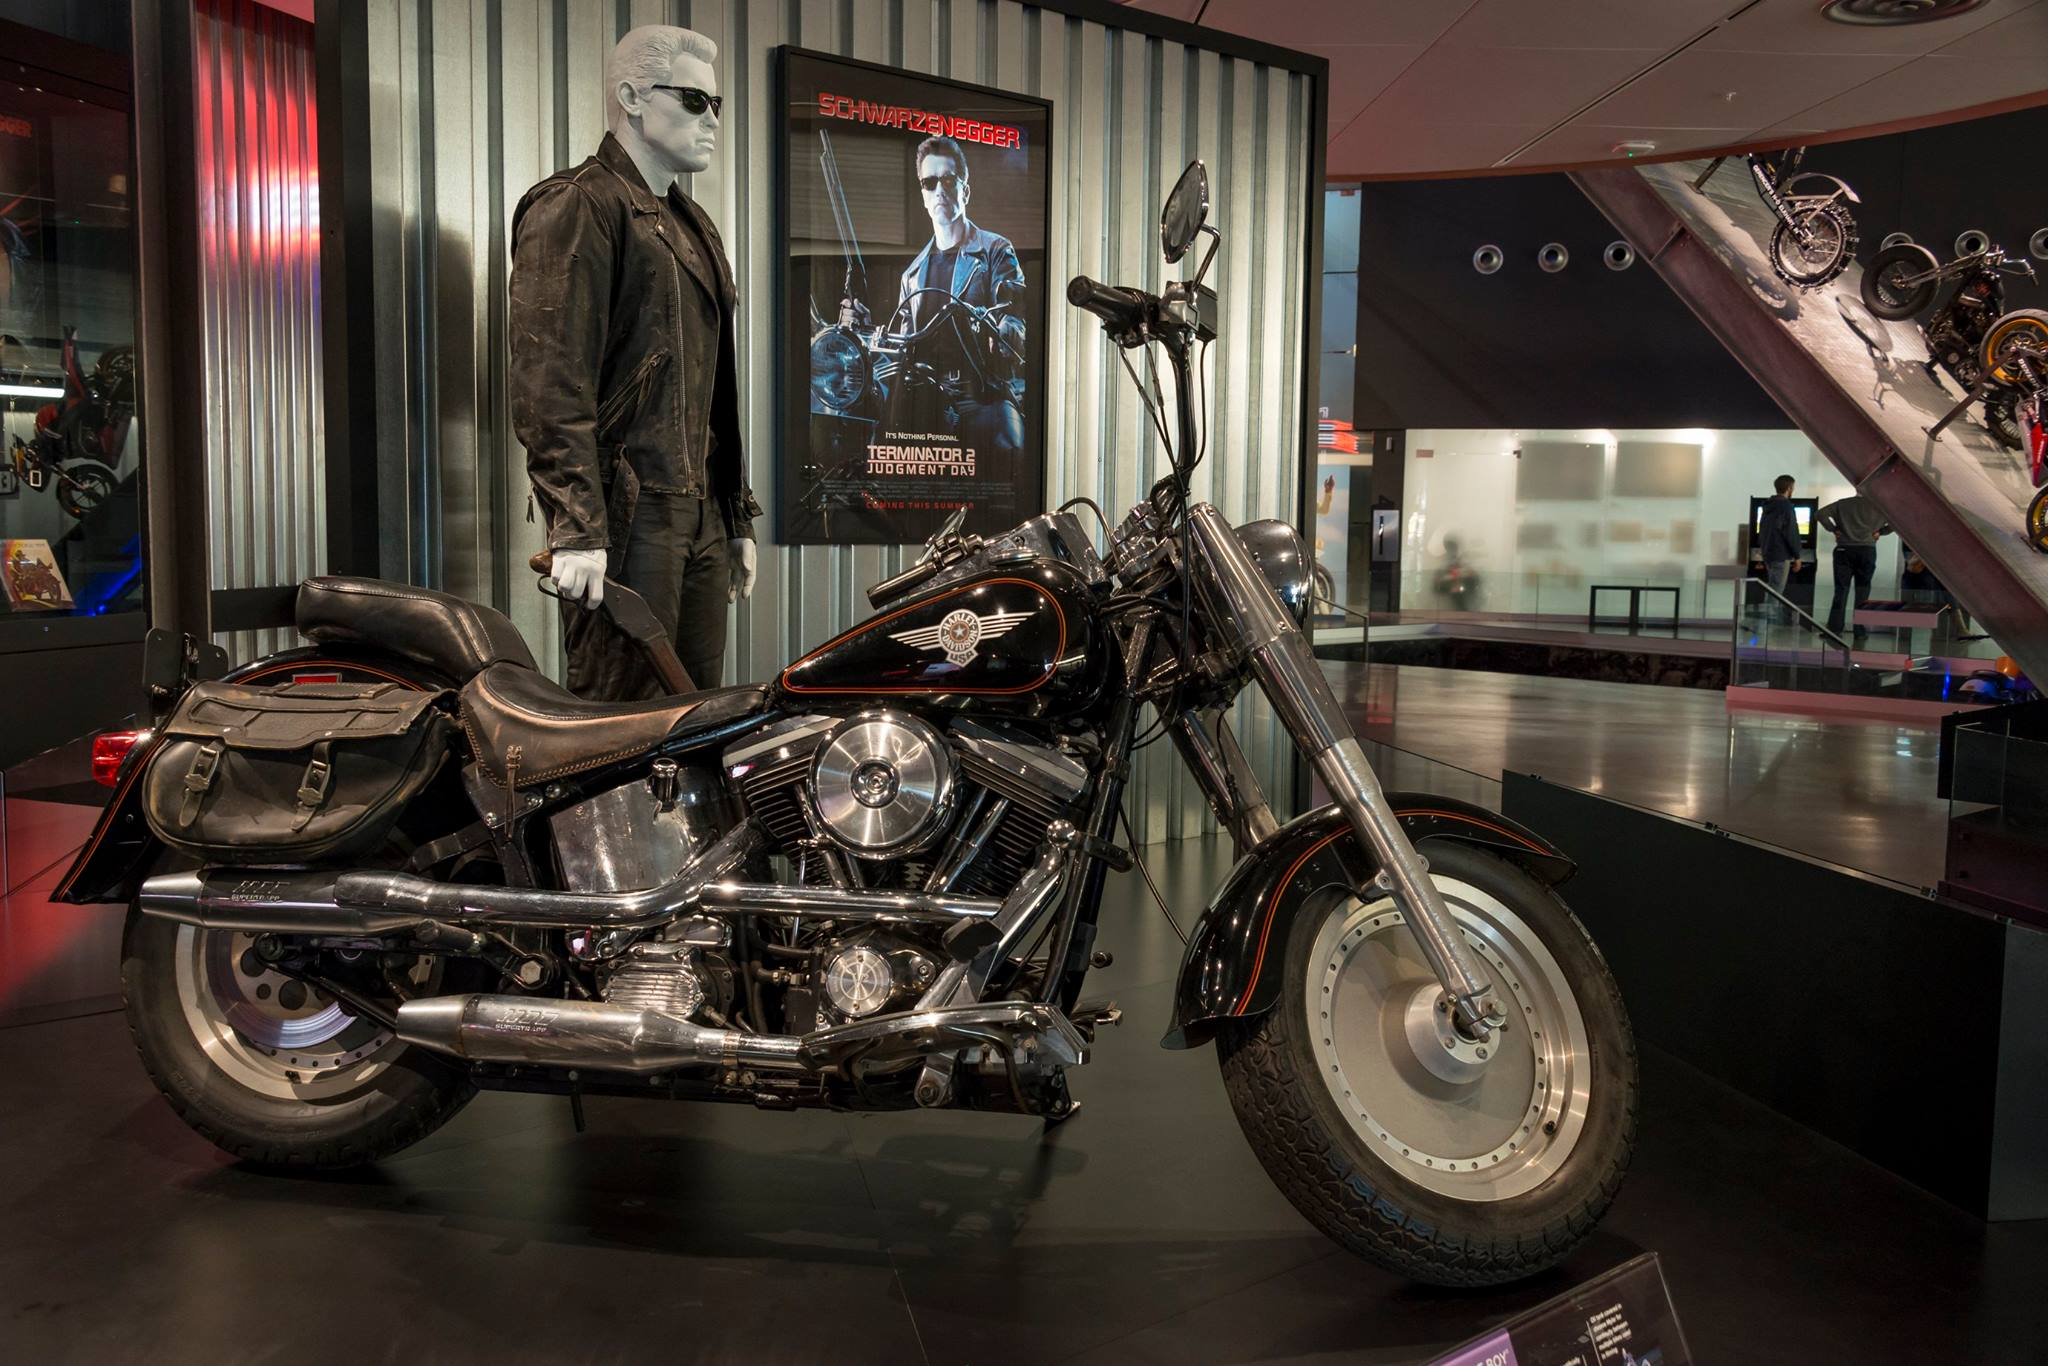 harley-davidson museum | wisconsin travel guide